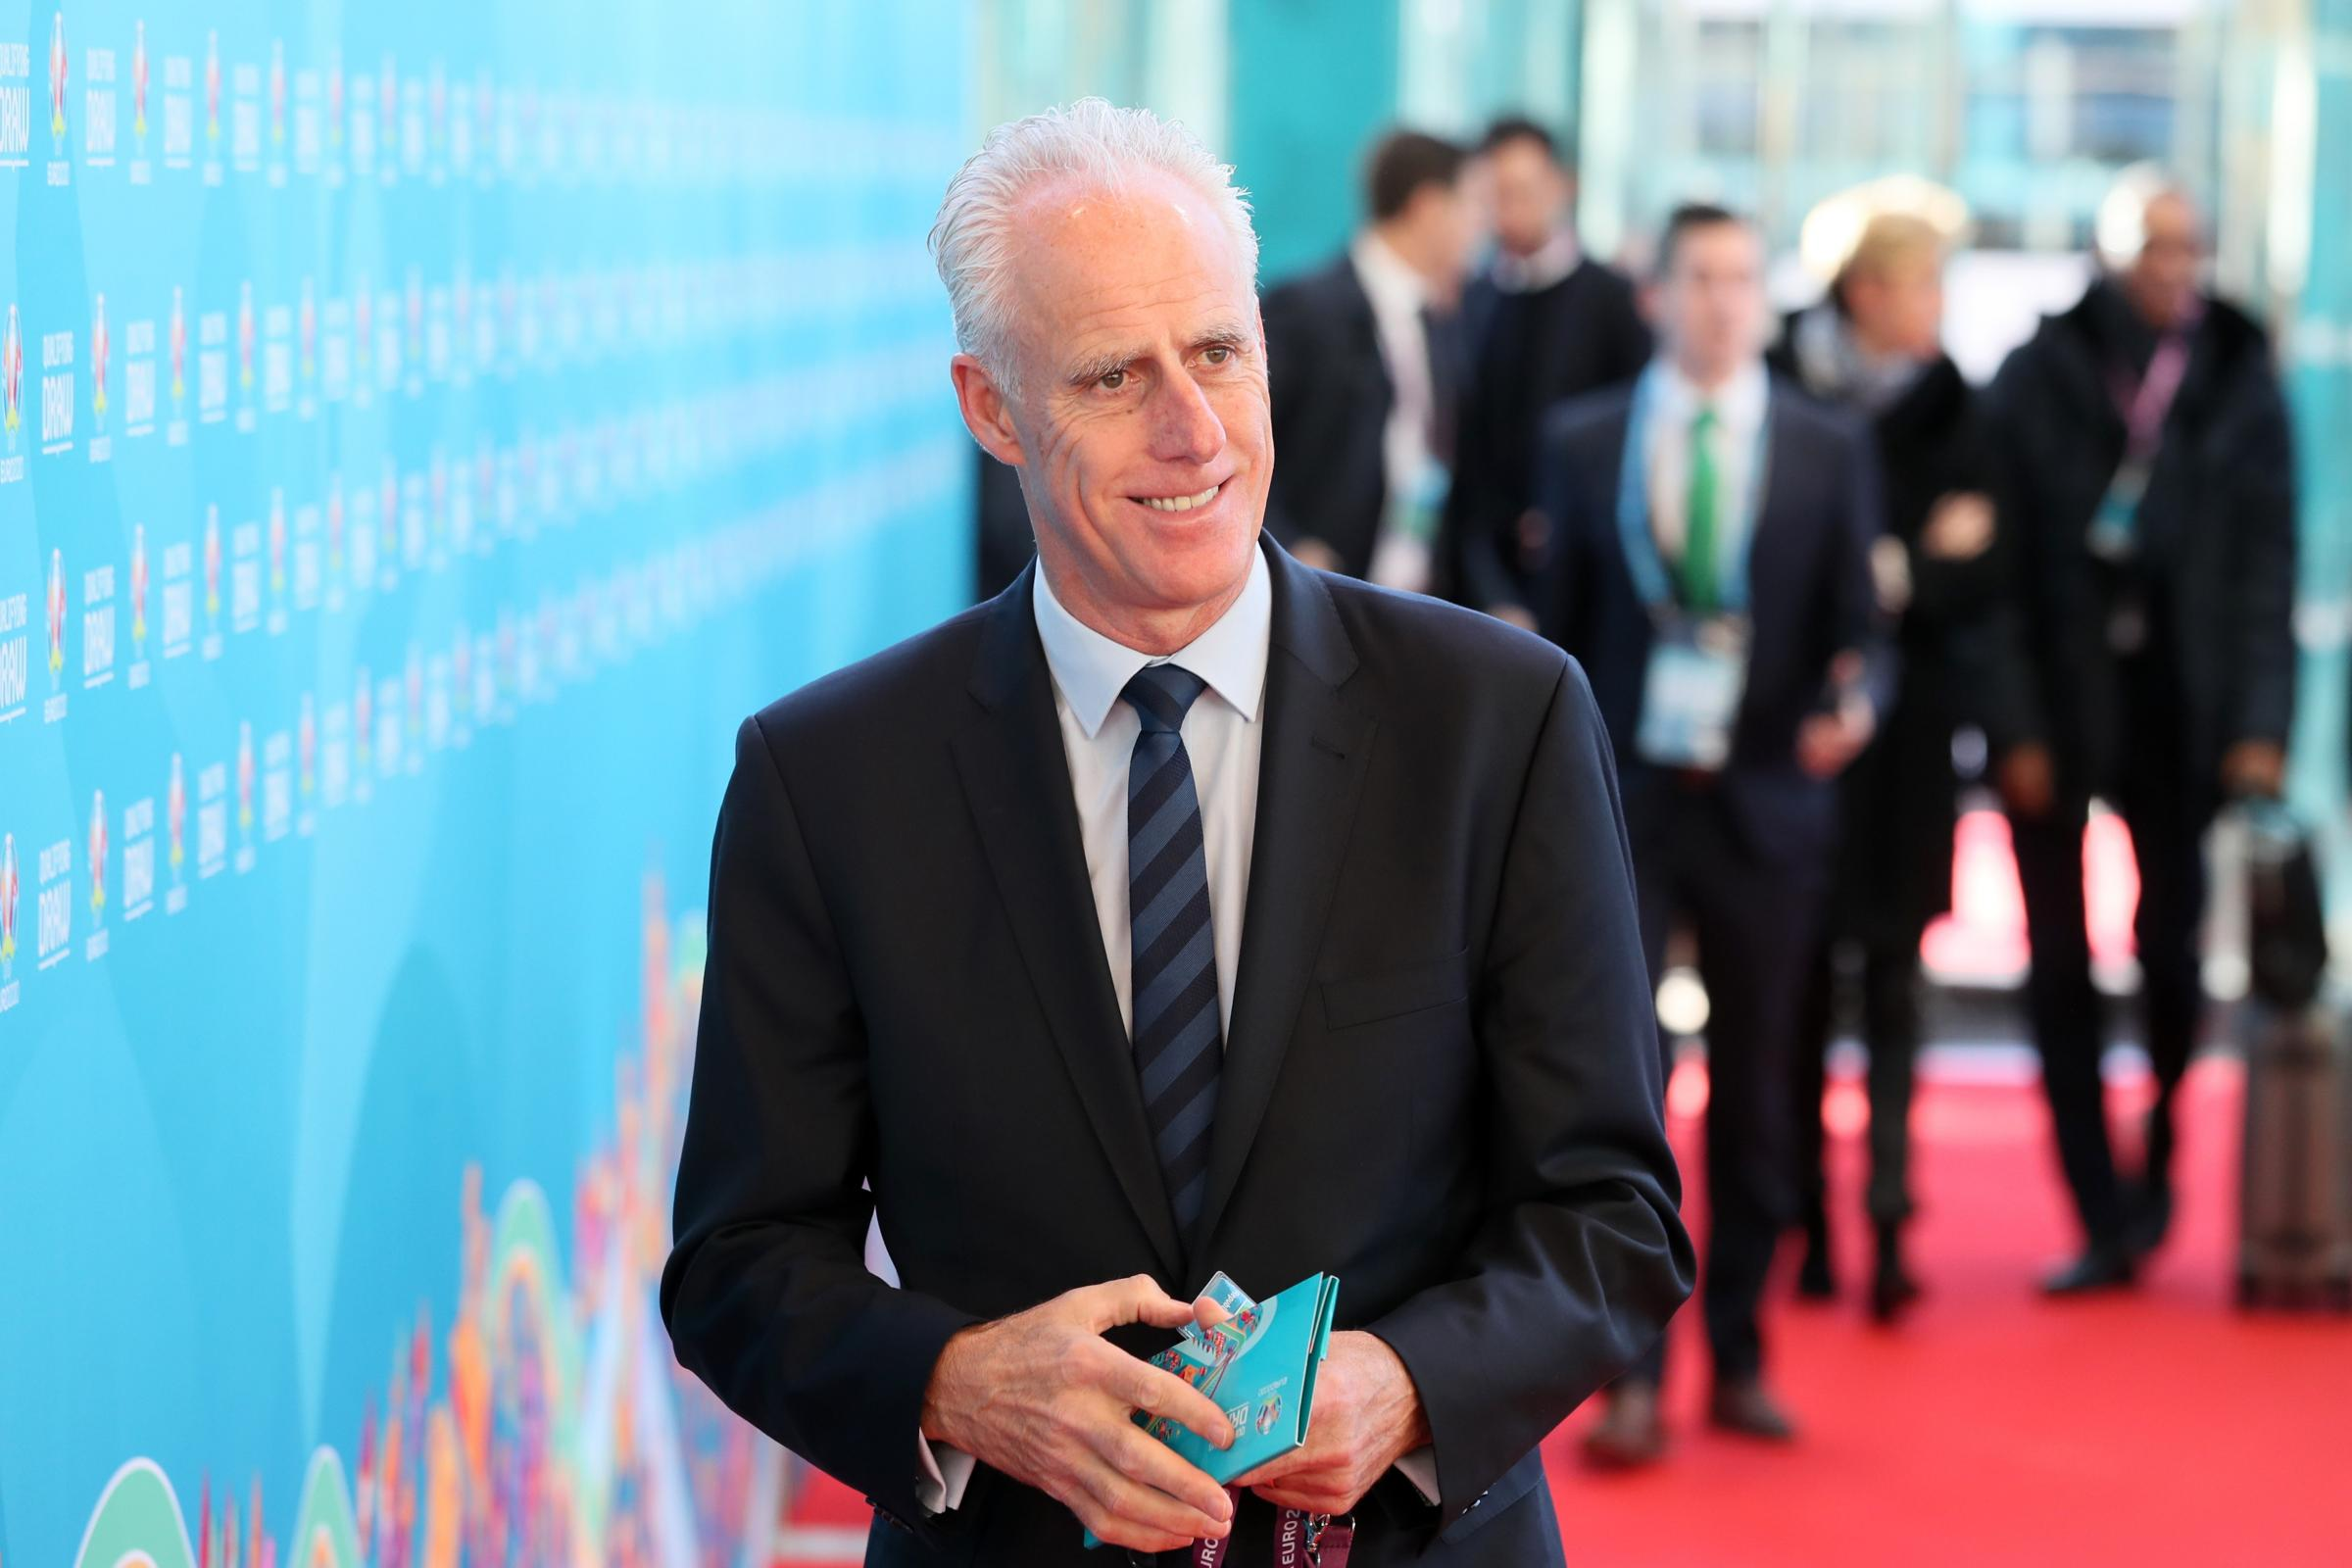 Republic of Ireland manager Mick McCarthy will send his side into friendly battle with Bulgaria and New Zealand